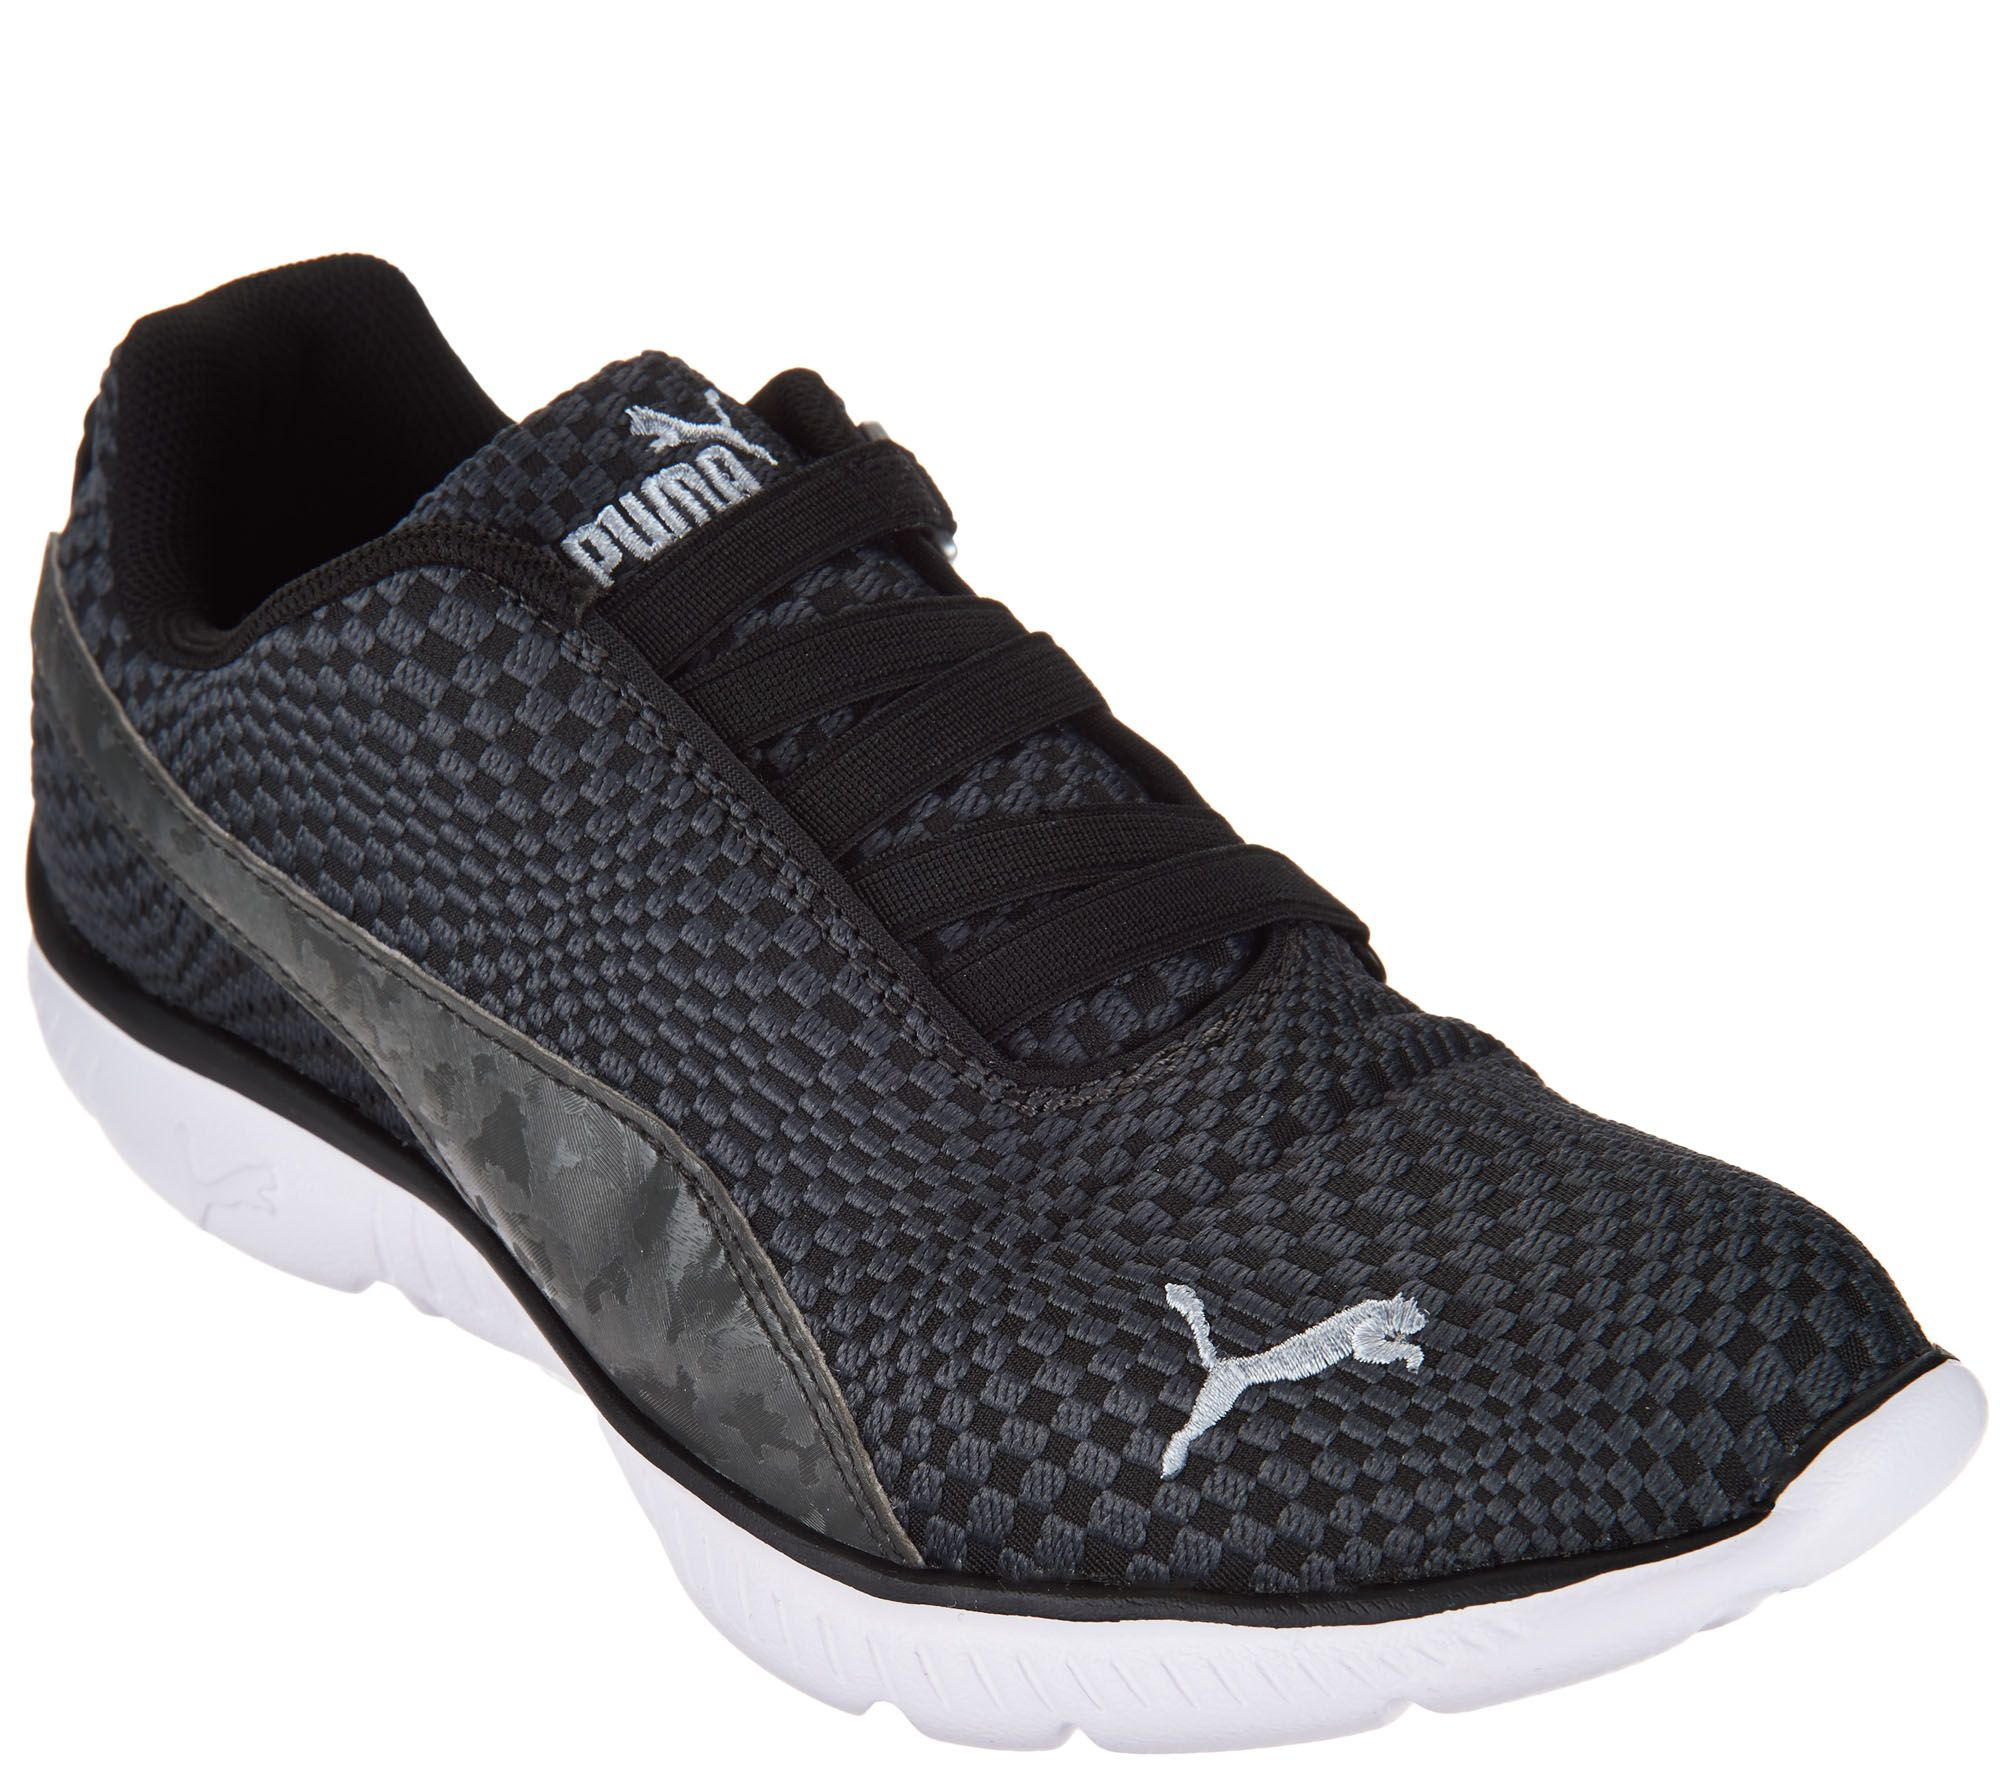 outlet looking for outlet wide range of PUMA Mesh Slip-On Sneakers - FashIN Alt Illusion 2014 cheap sale cheap tumblr genuine sale online h4UiRZO4Y